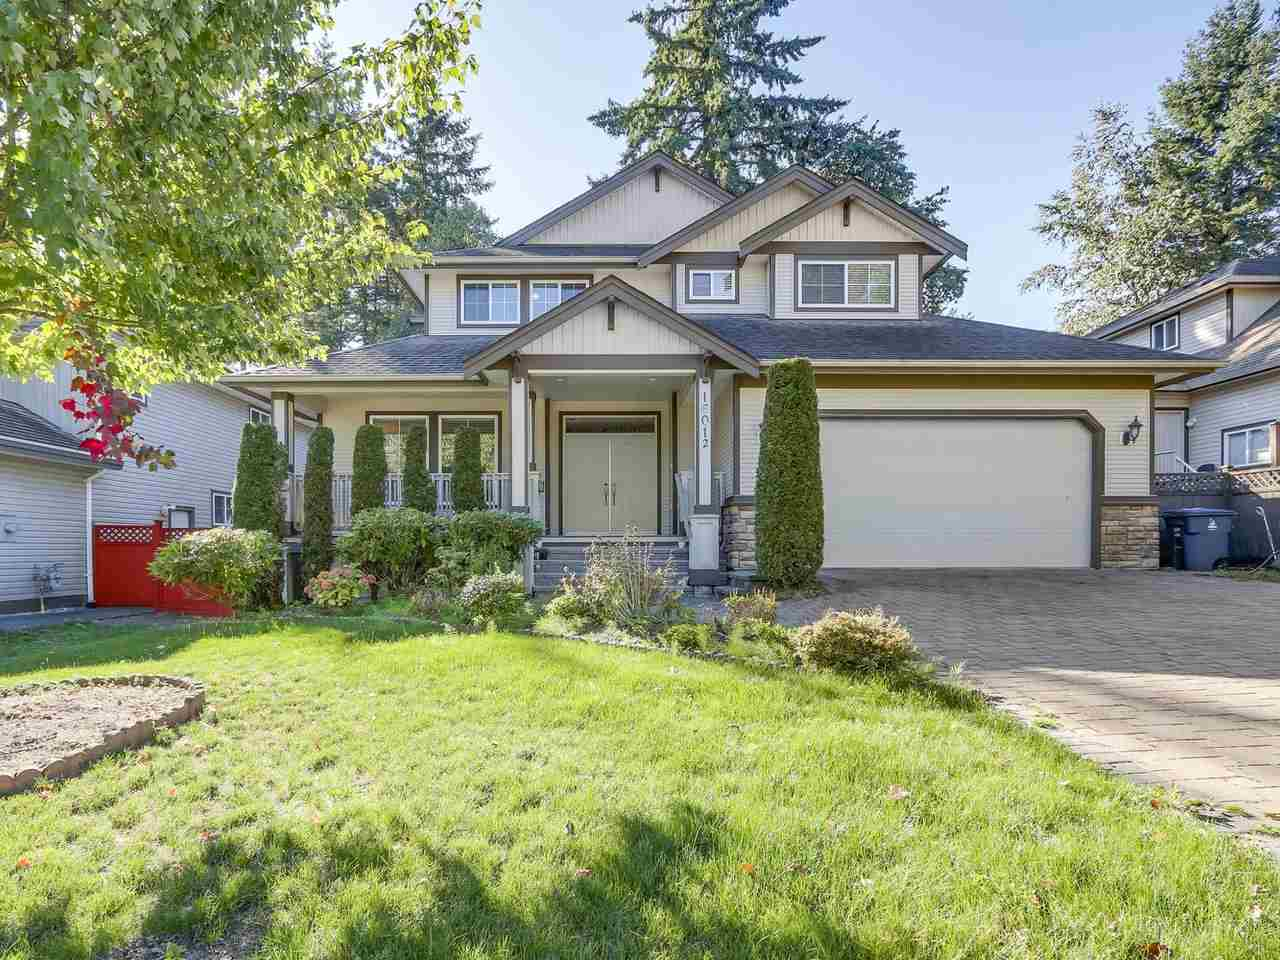 Main Photo: 16012 90 Avenue in Surrey: Fleetwood Tynehead House for sale : MLS® # R2210486